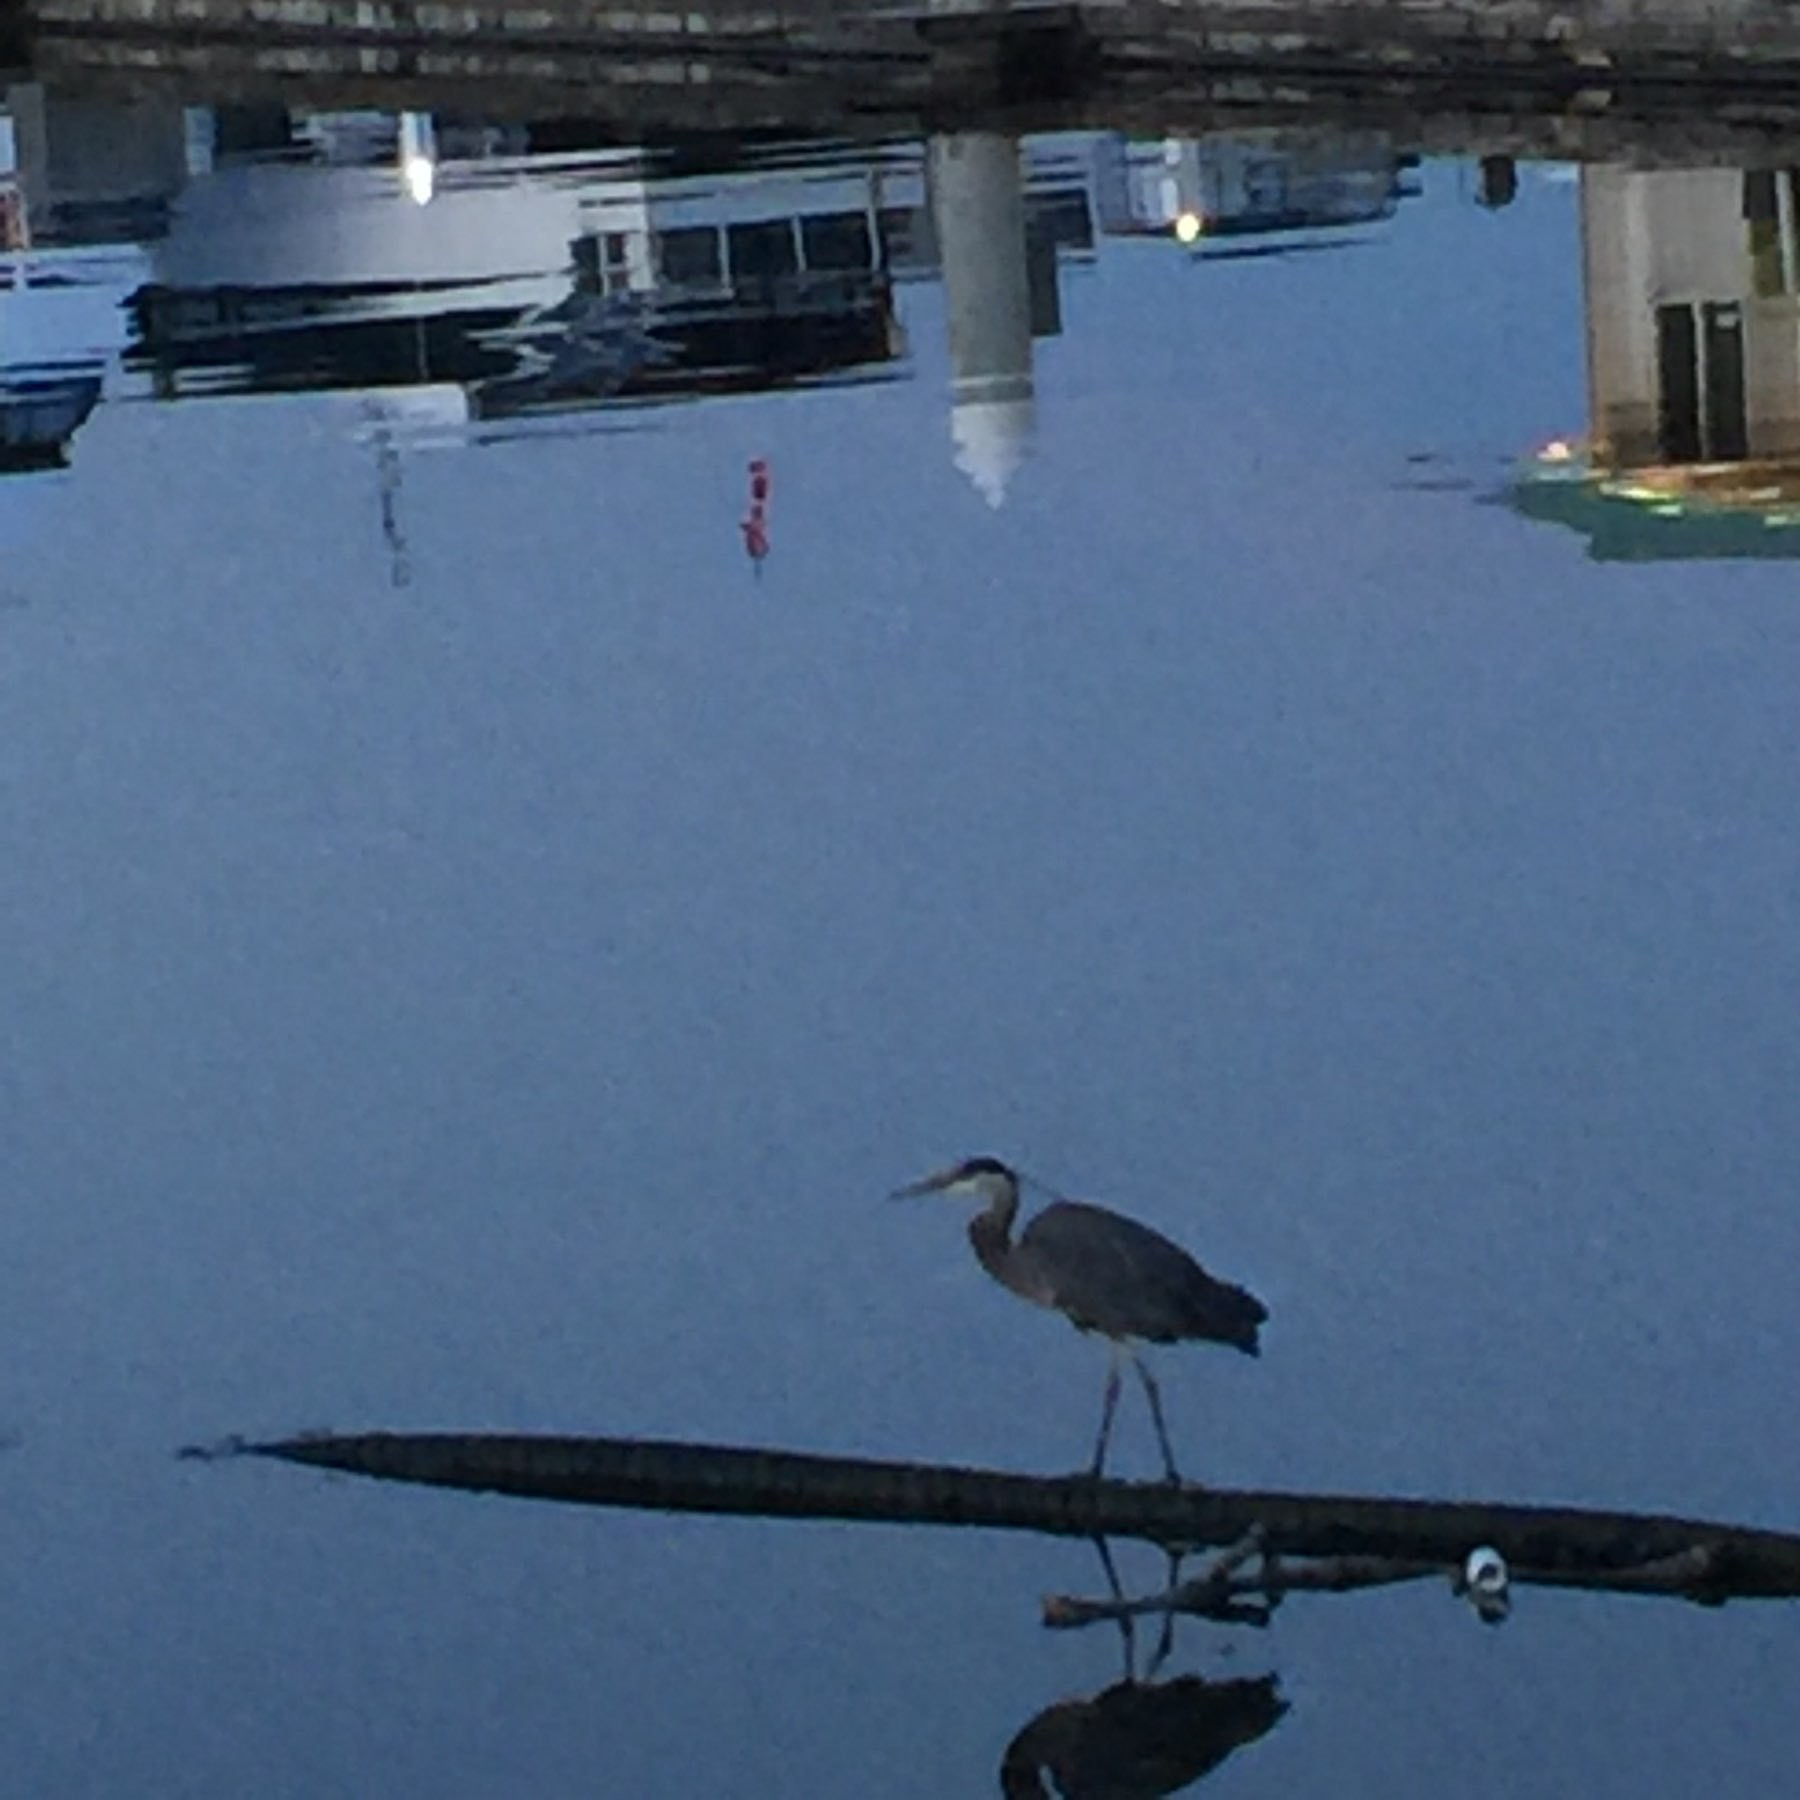 Heron & reflecting water in marina